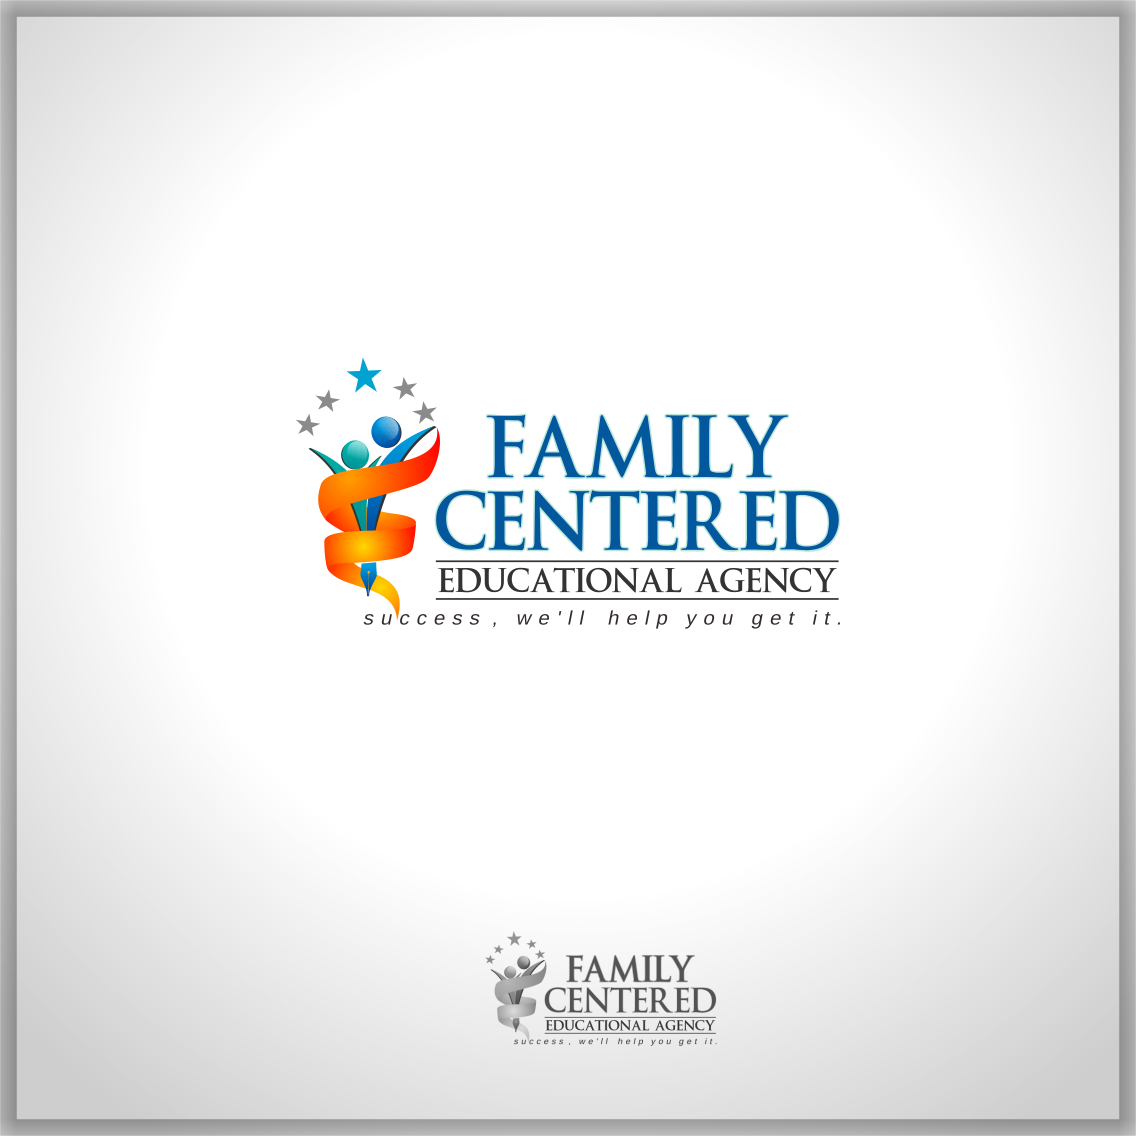 Logo Design by Private User - Entry No. 66 in the Logo Design Contest Captivating Logo Design for Family Centered Educational Agency.